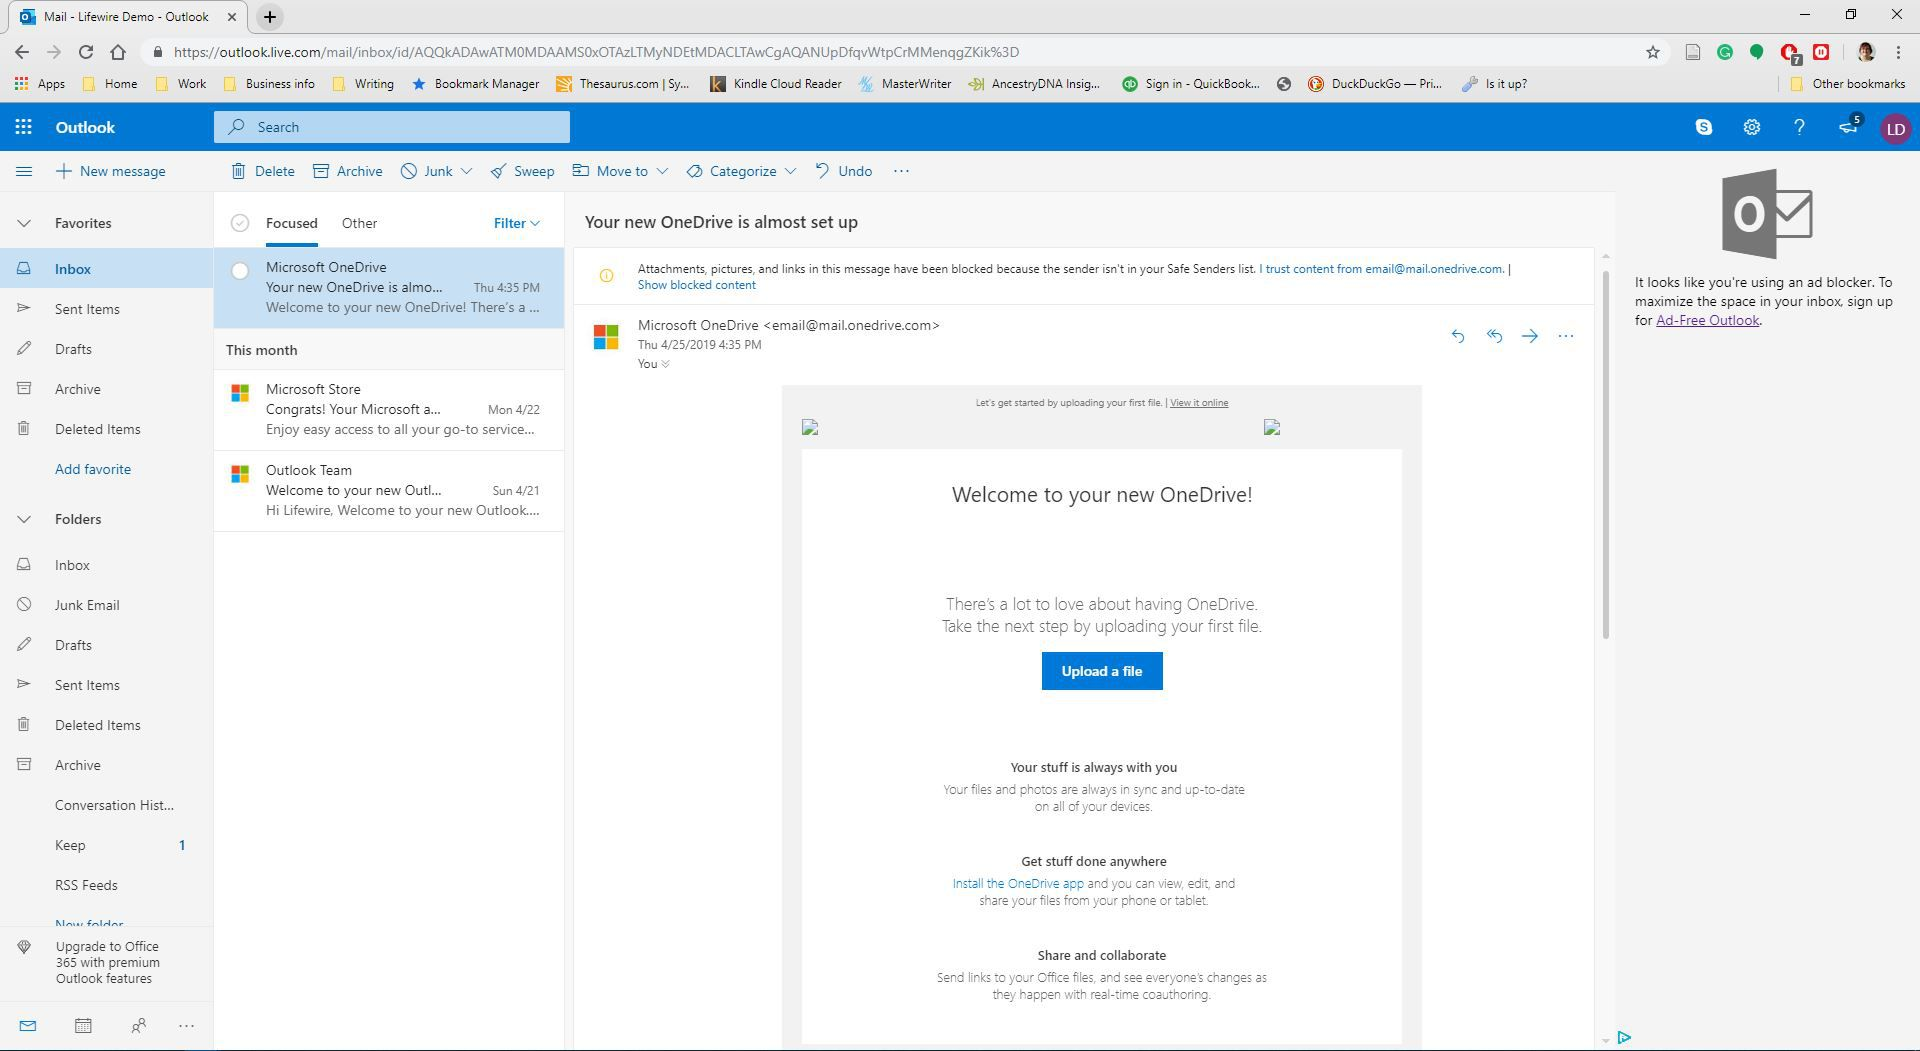 How to Forward an Email Message in Outlook com